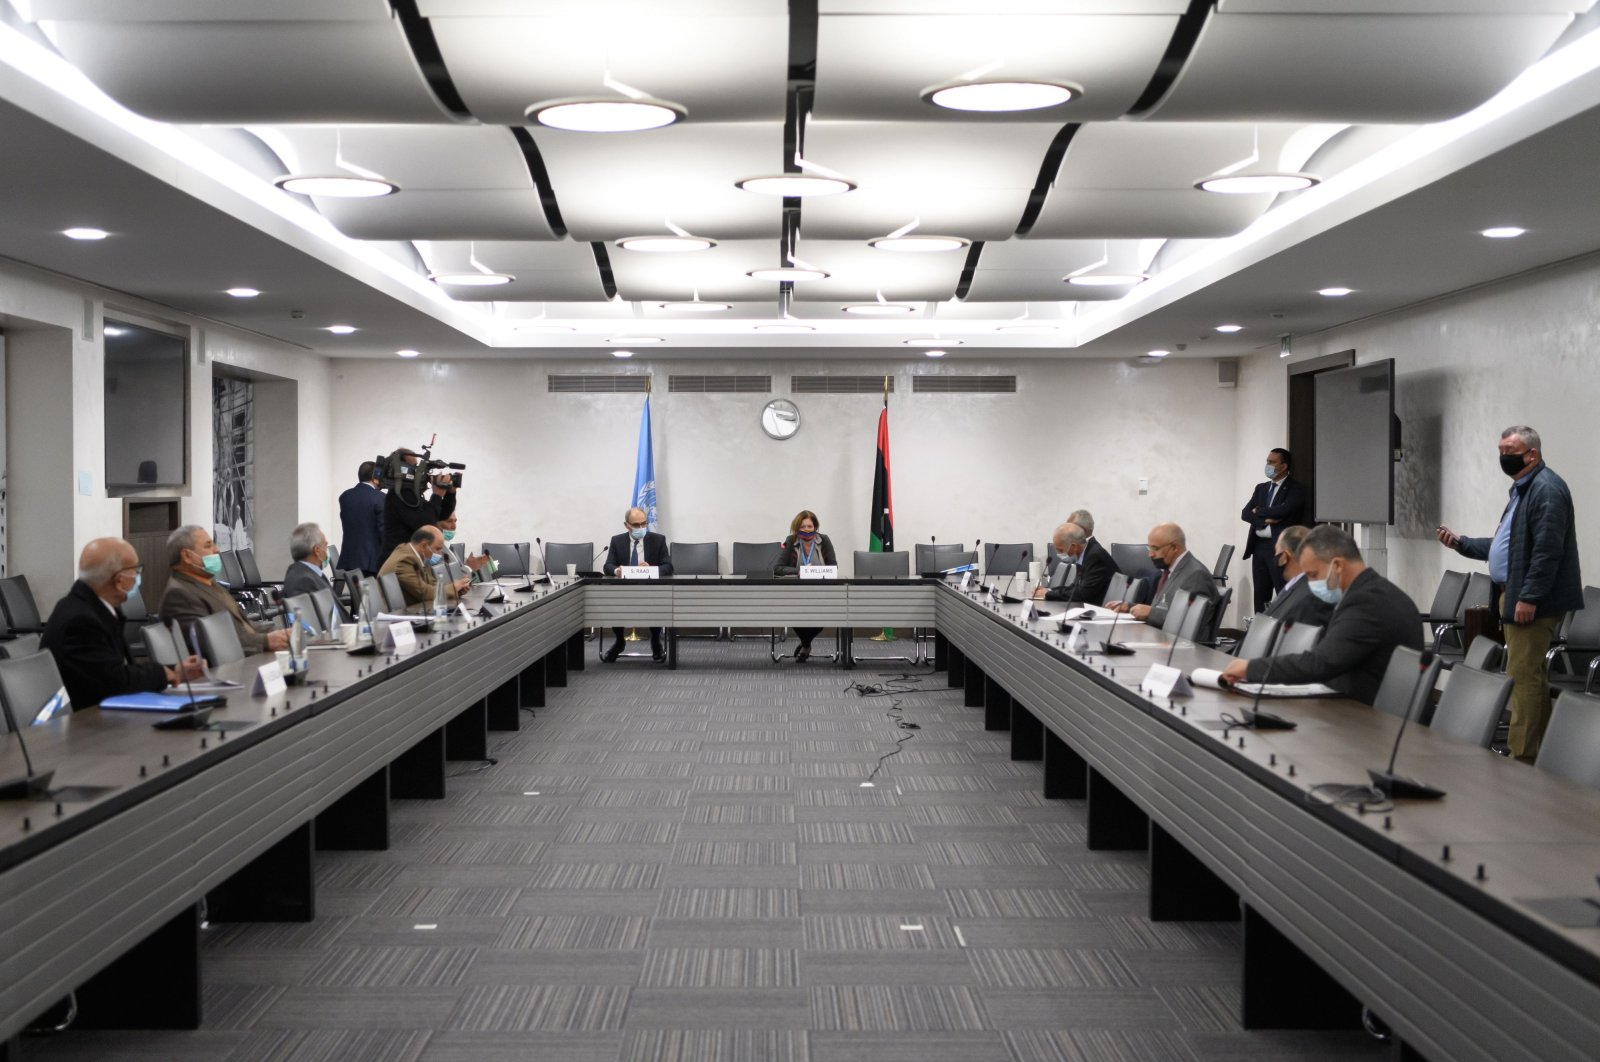 General view during talks between the rival factions in the Libya conflict at the United Nations offices in Geneva on Oct. 20, 2020. (AFP Photo)